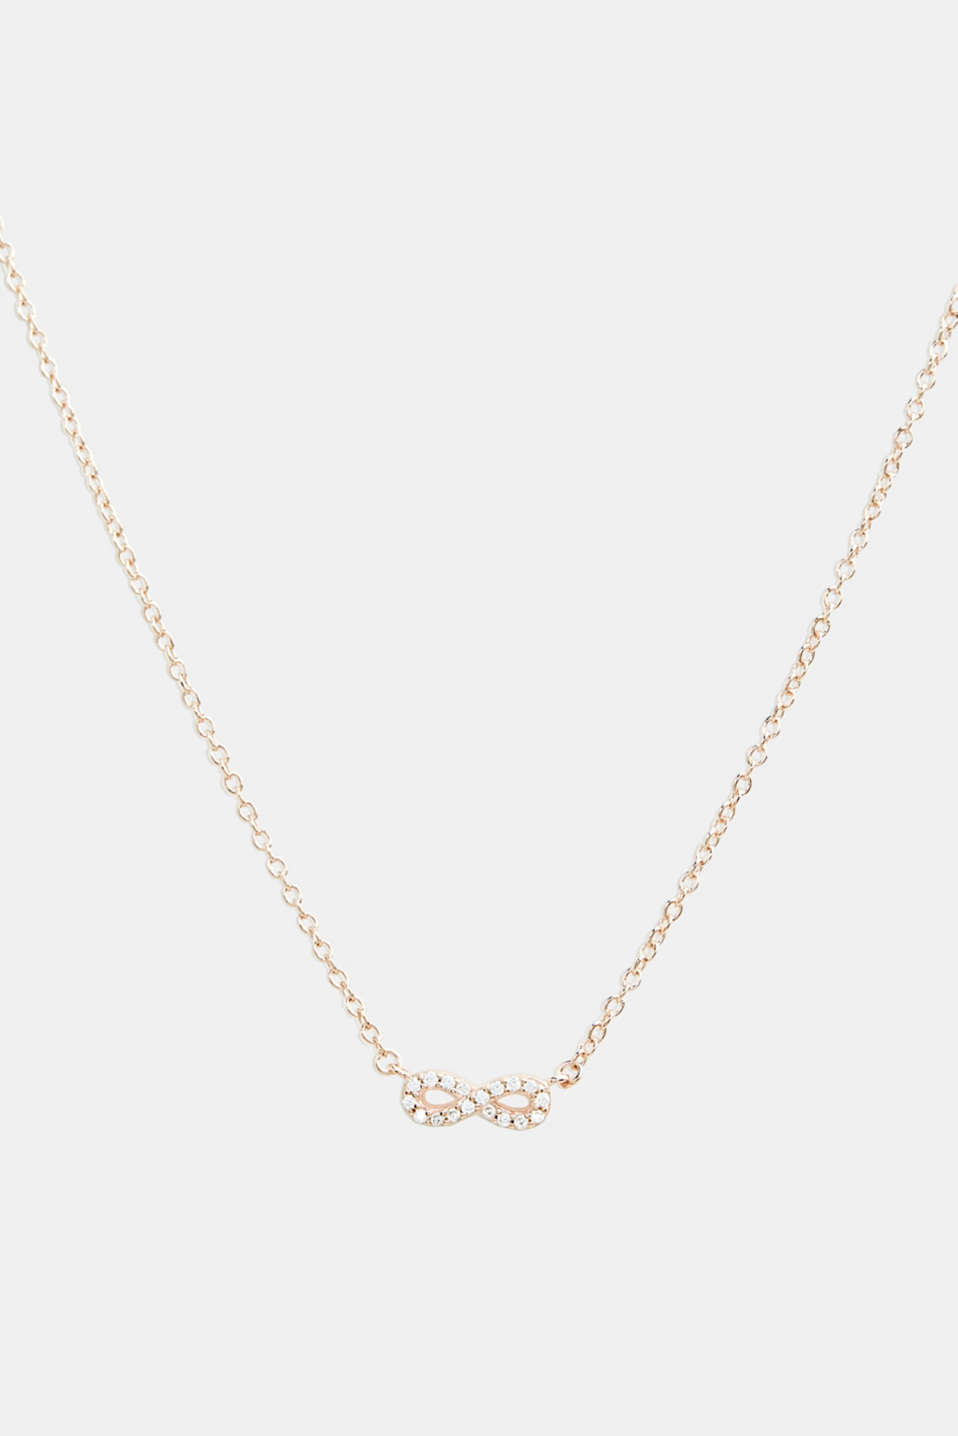 Necklace with zirconia pendant, sterling silver, LCROSEGOLD, detail image number 0